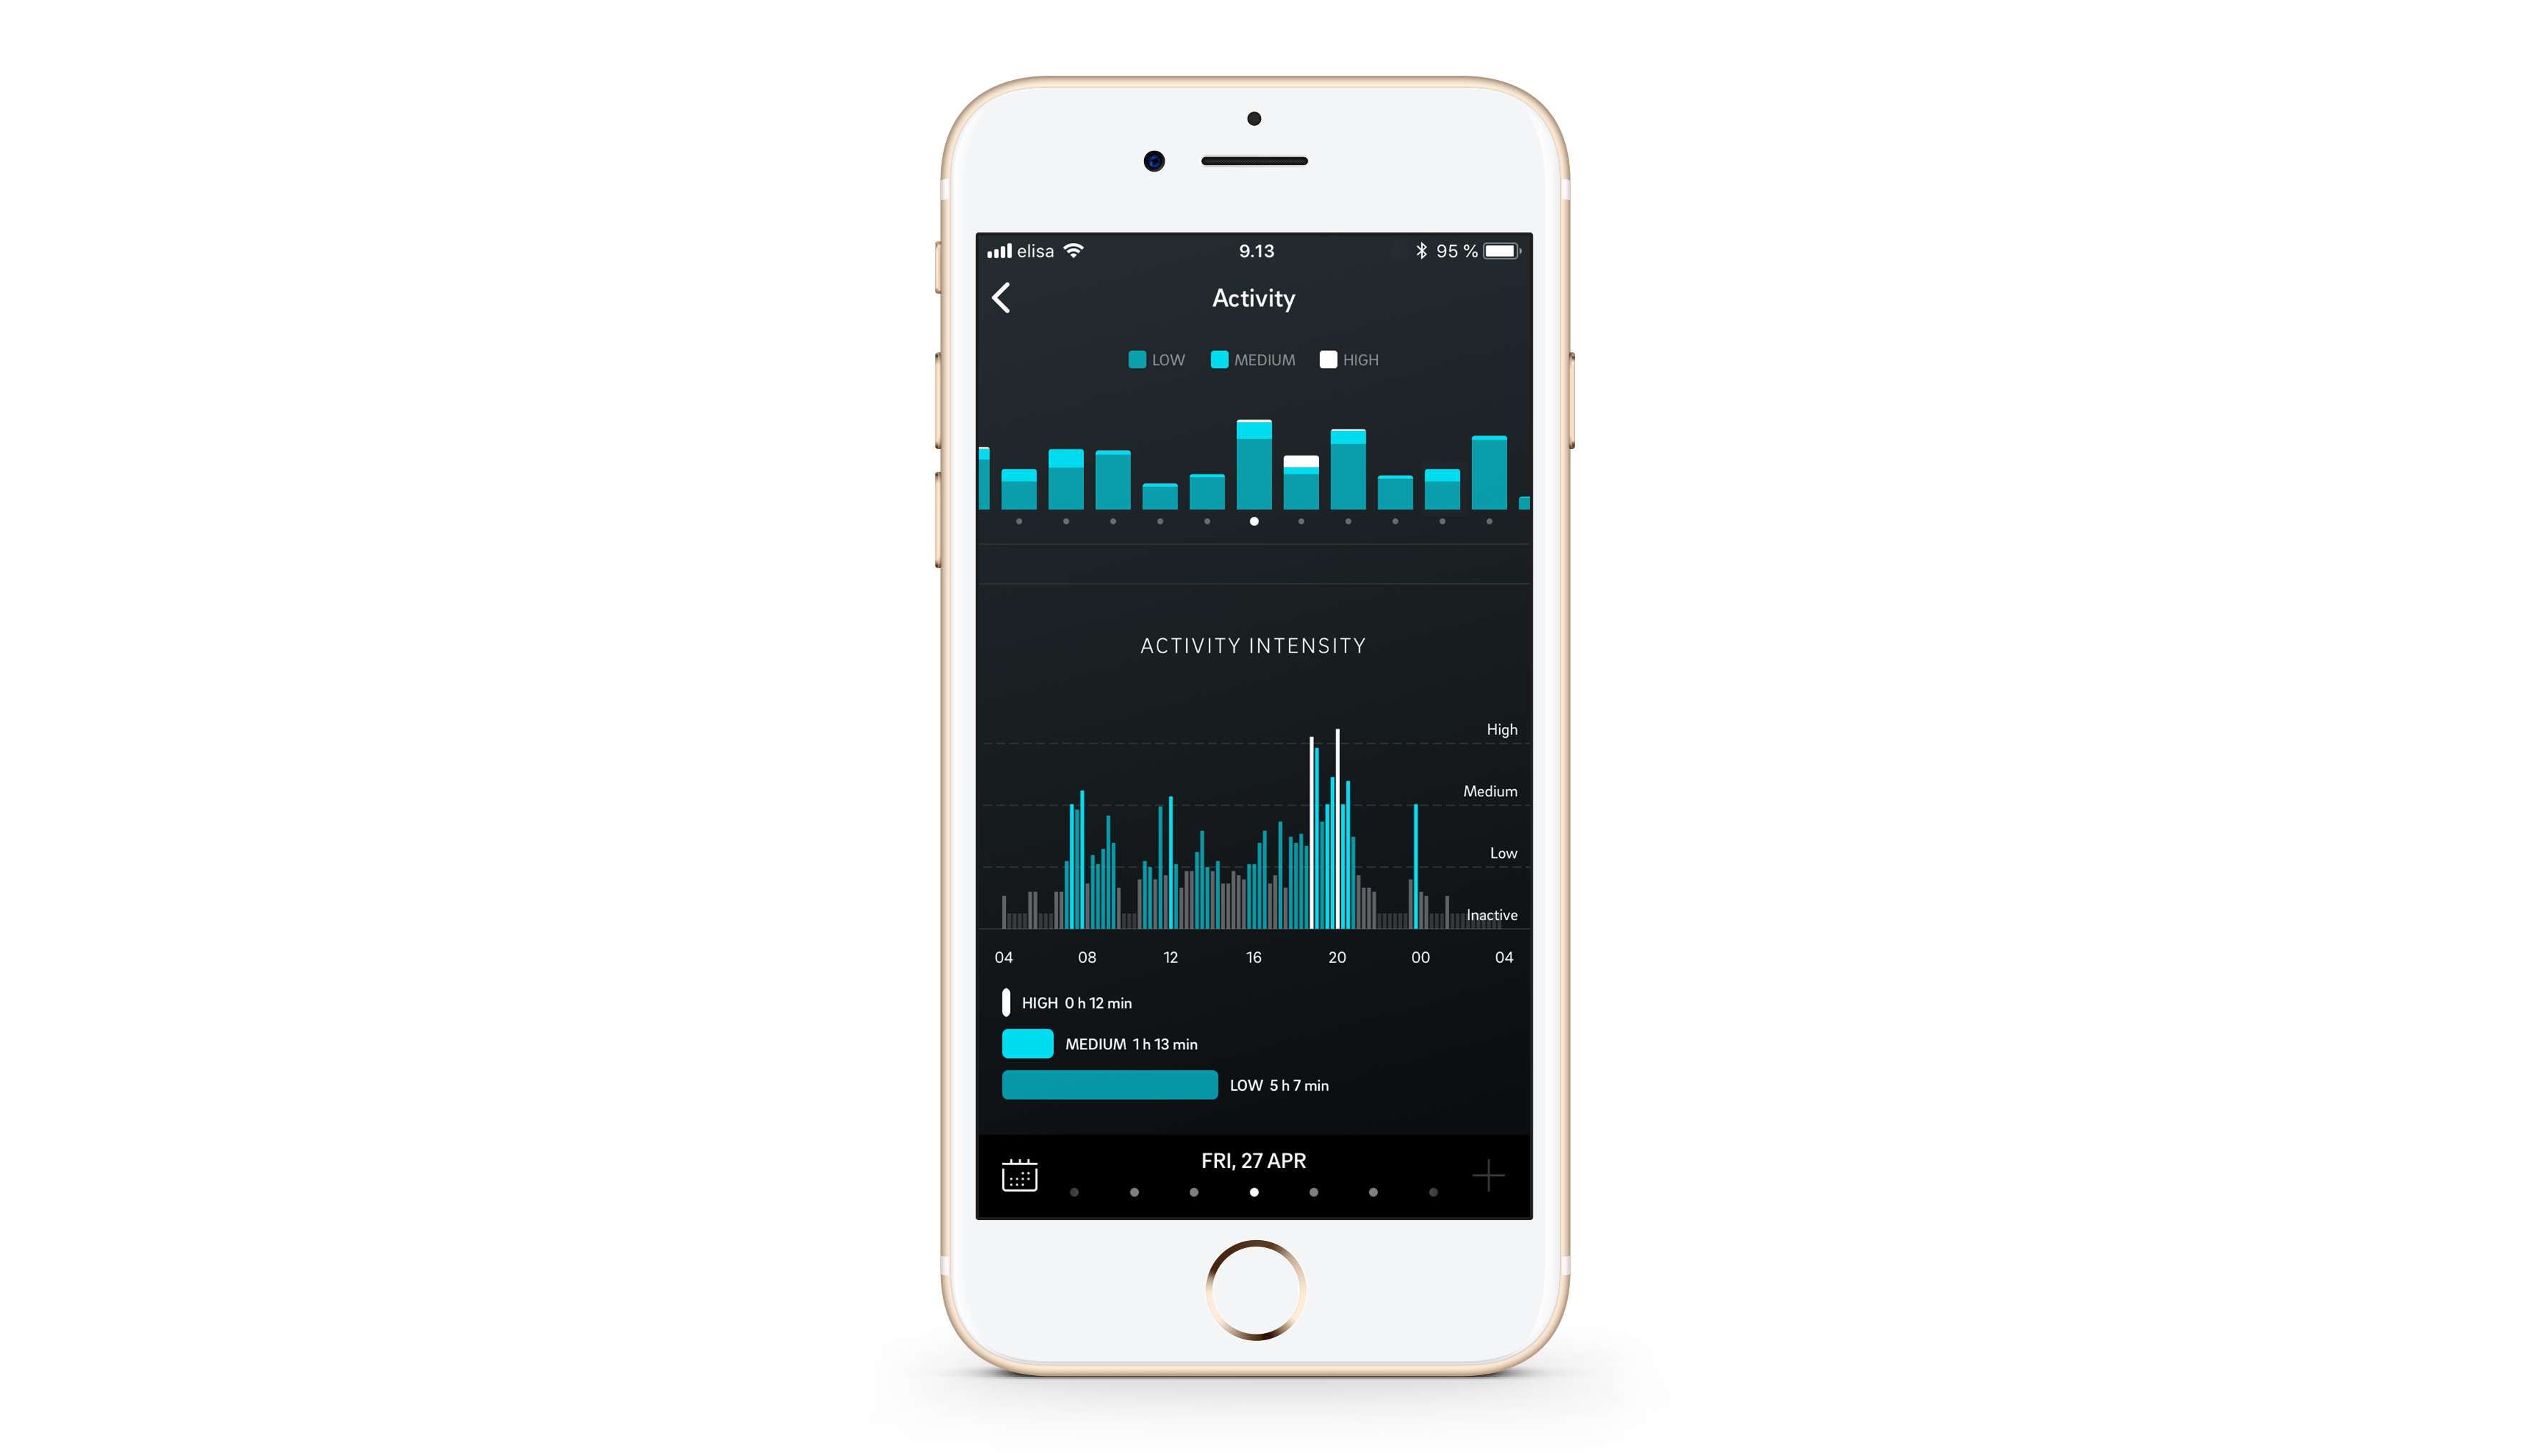 The oura app on an iPhone